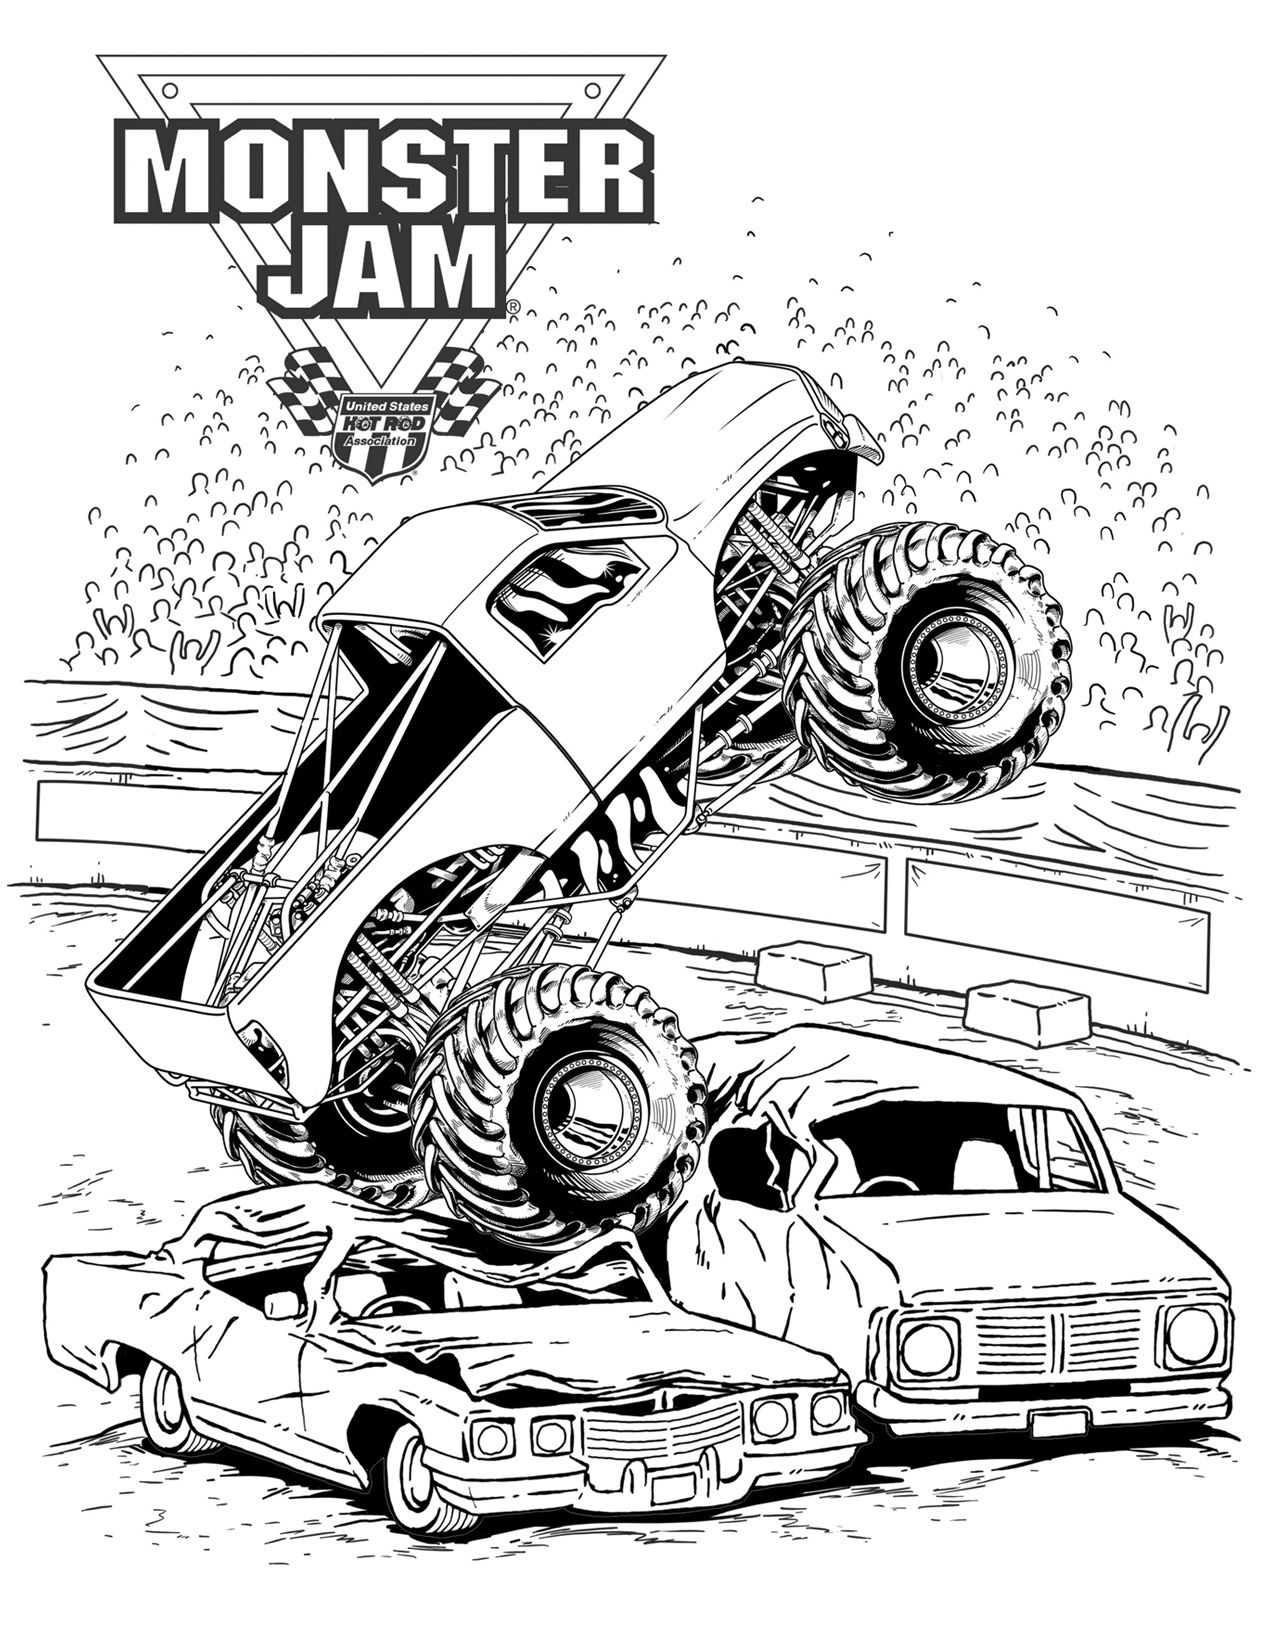 monster truck coloring pages http://www.monsterjam.com